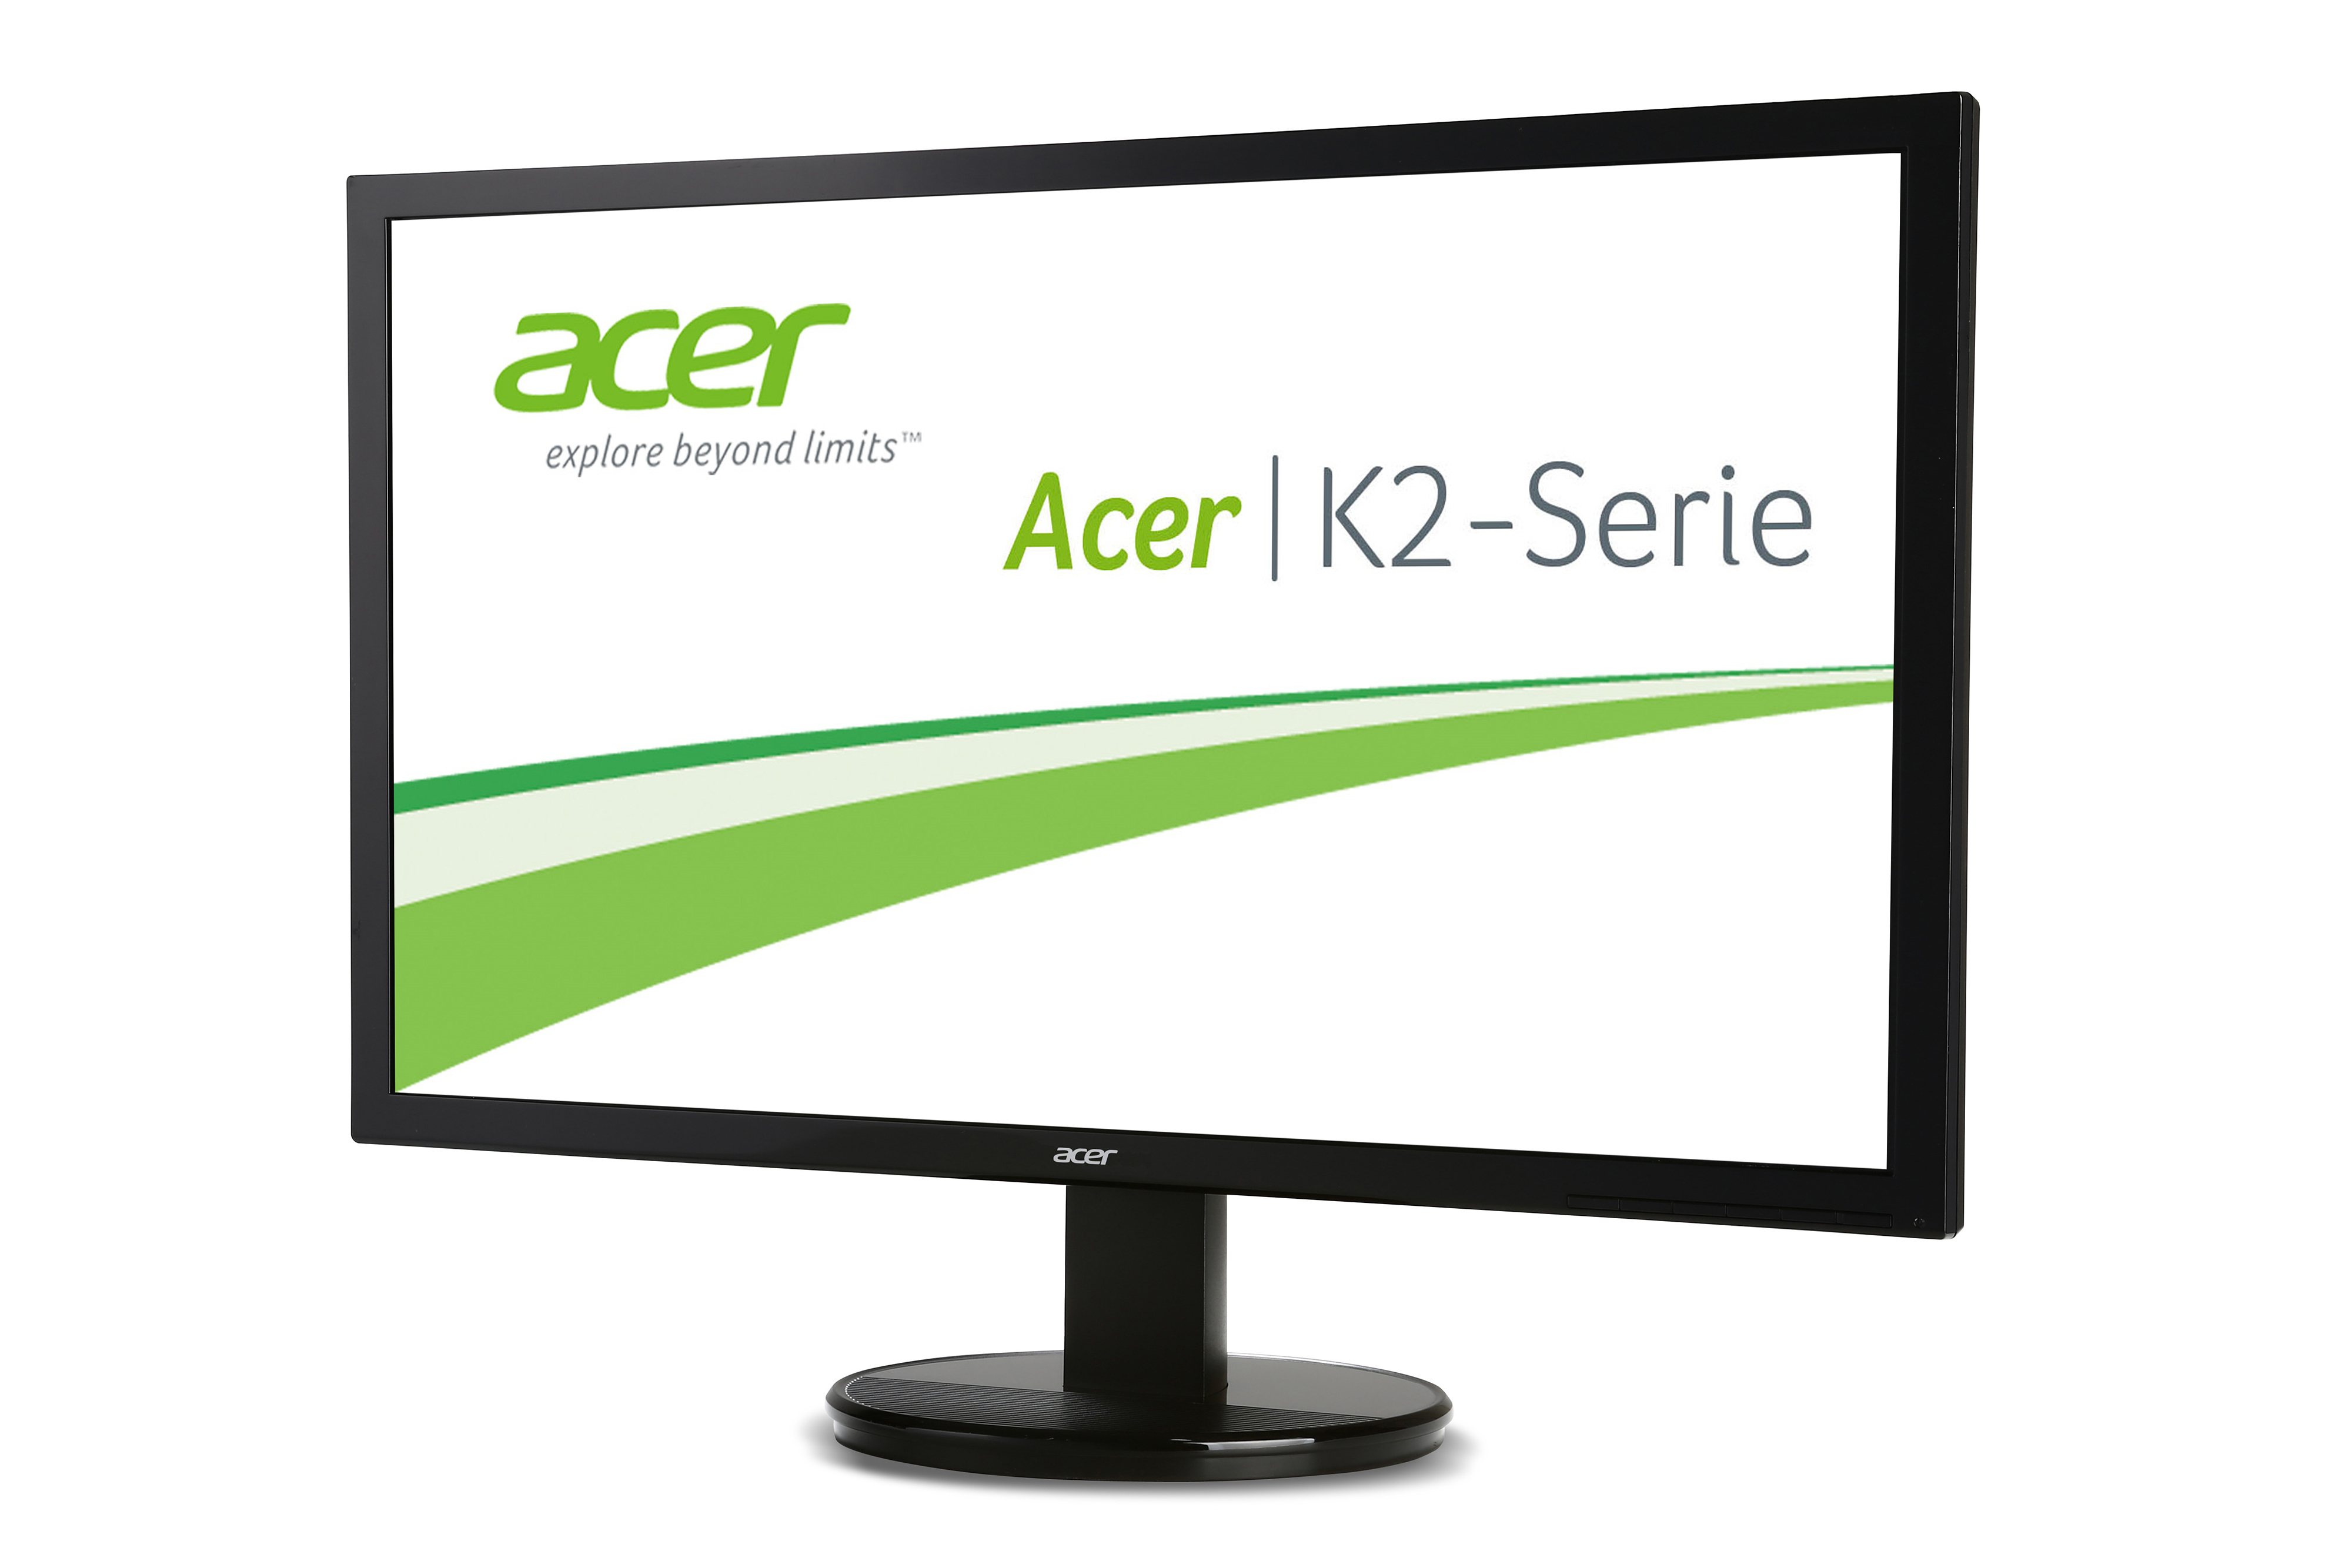 Acer 61Cm 24 Inch Black Acer Ecodisplay Monitor